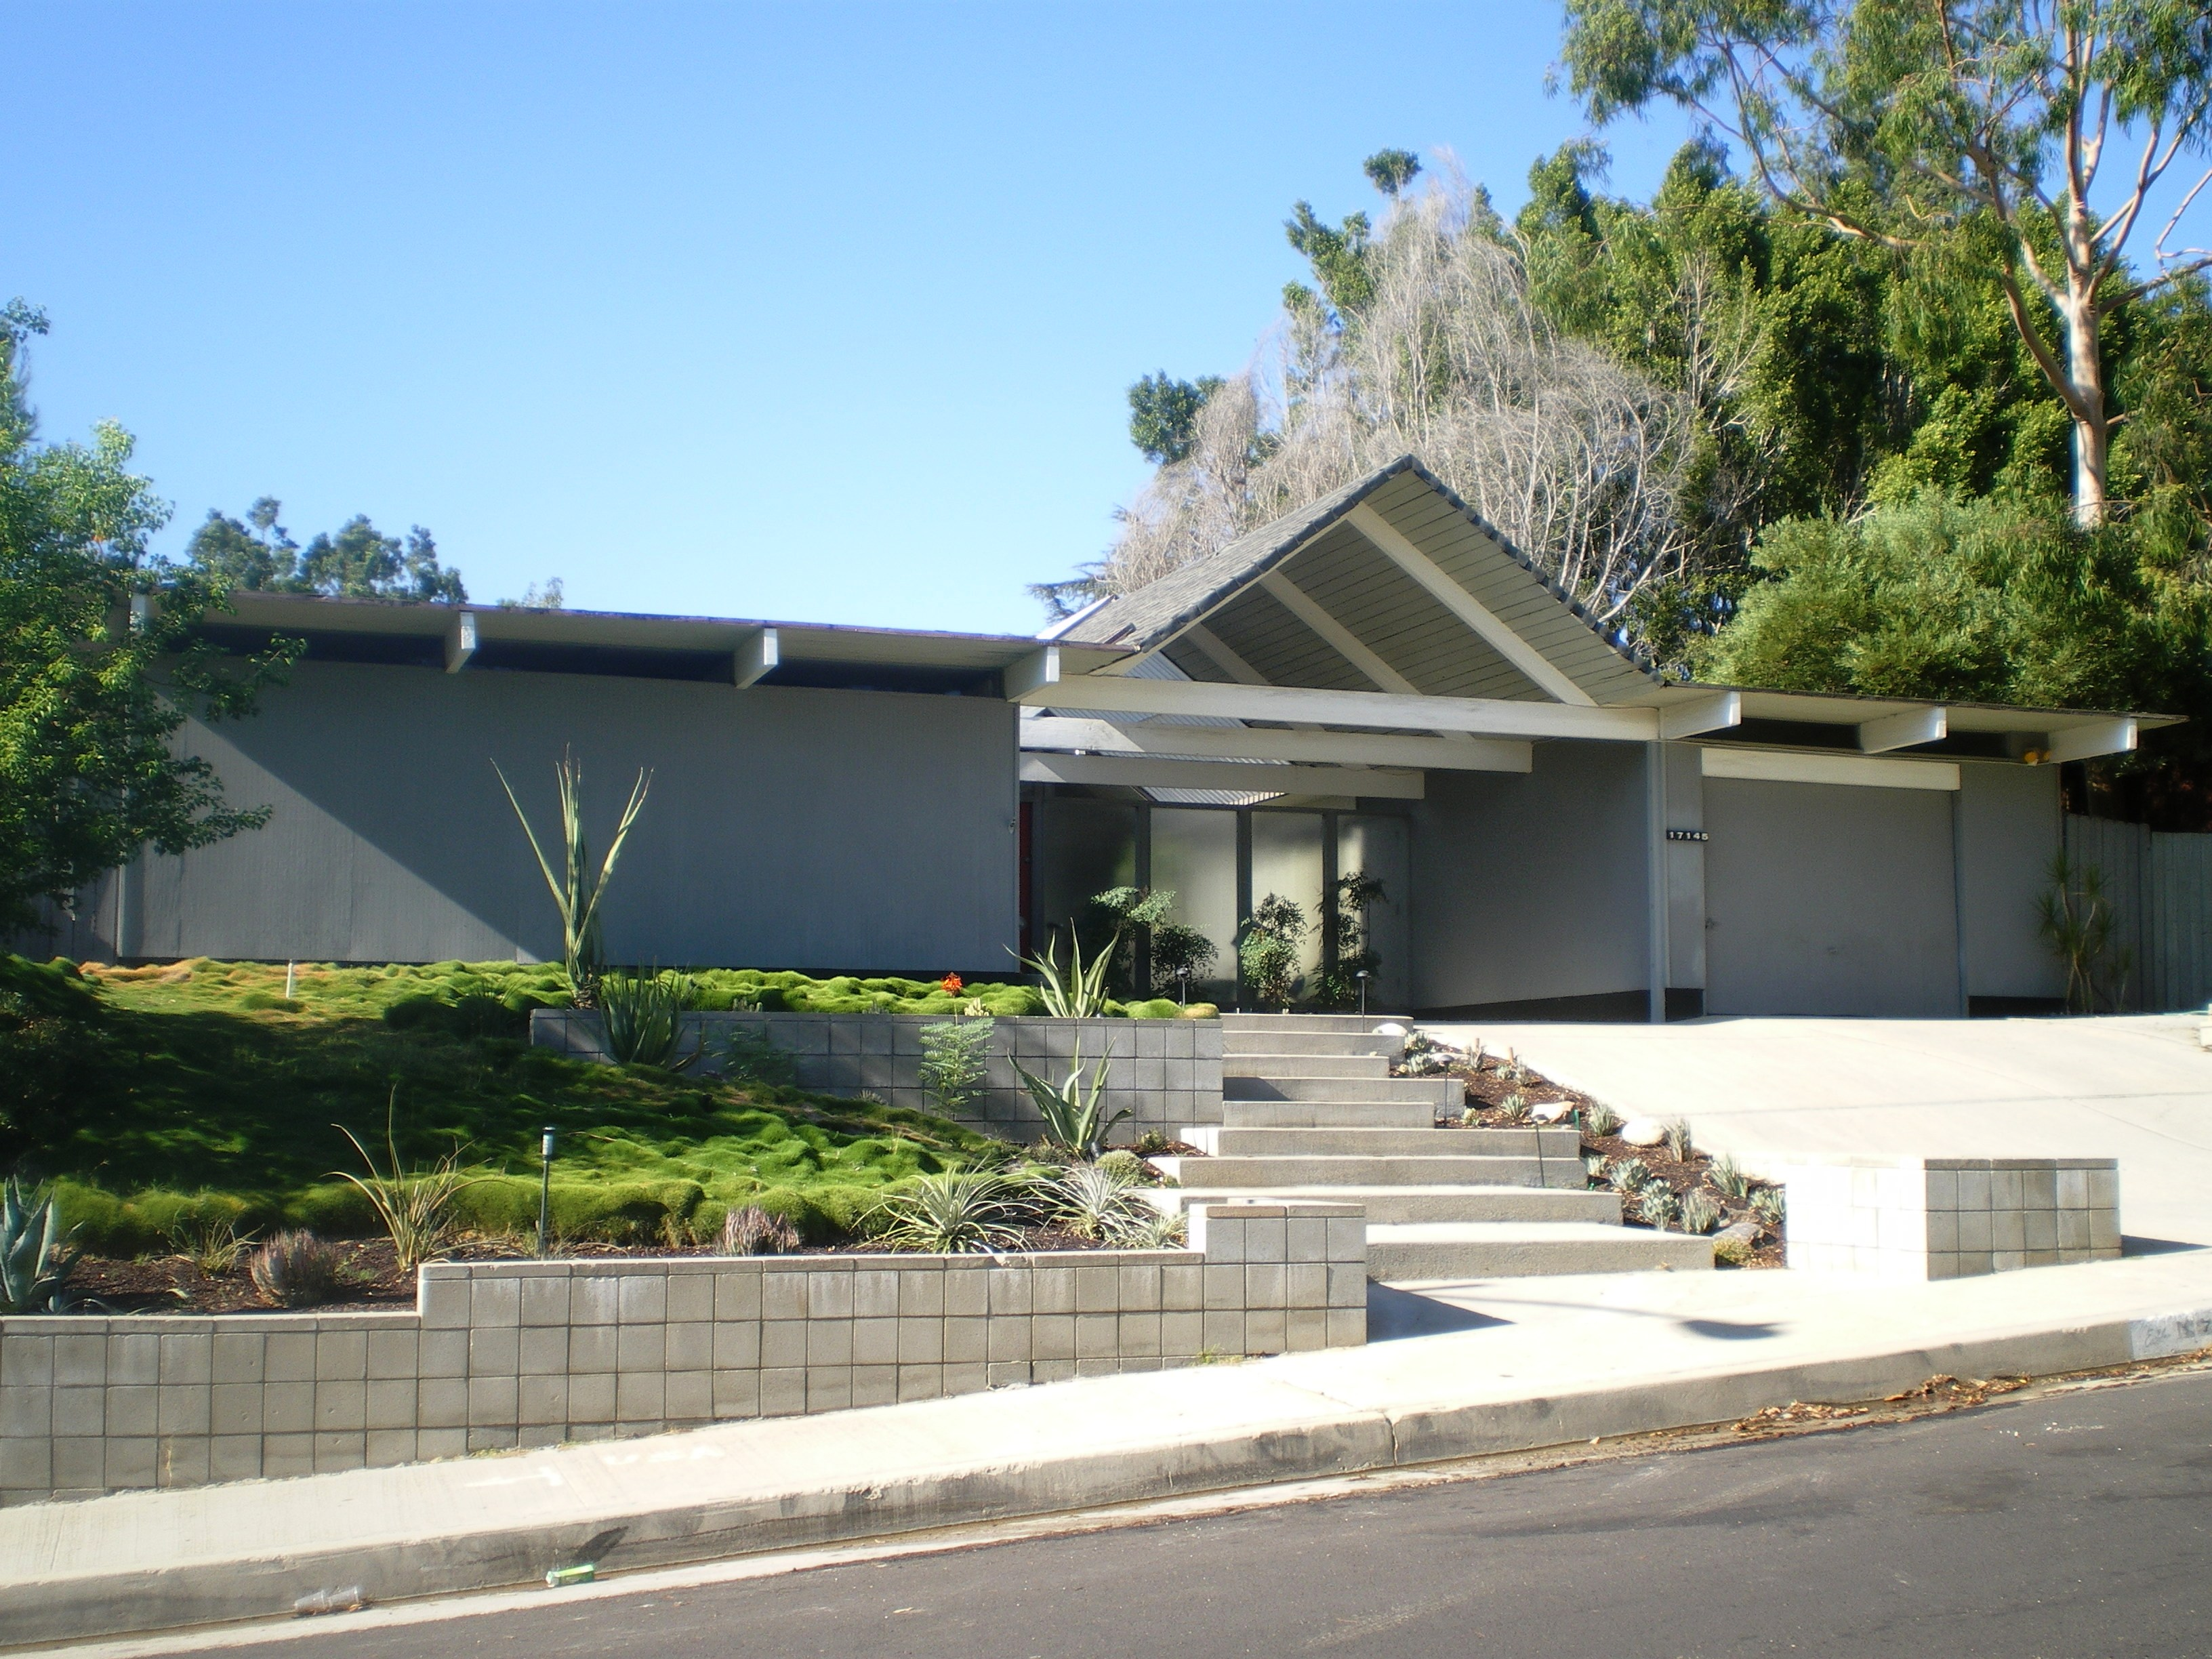 Joseph eichler and the apple architectoid for Century home builders